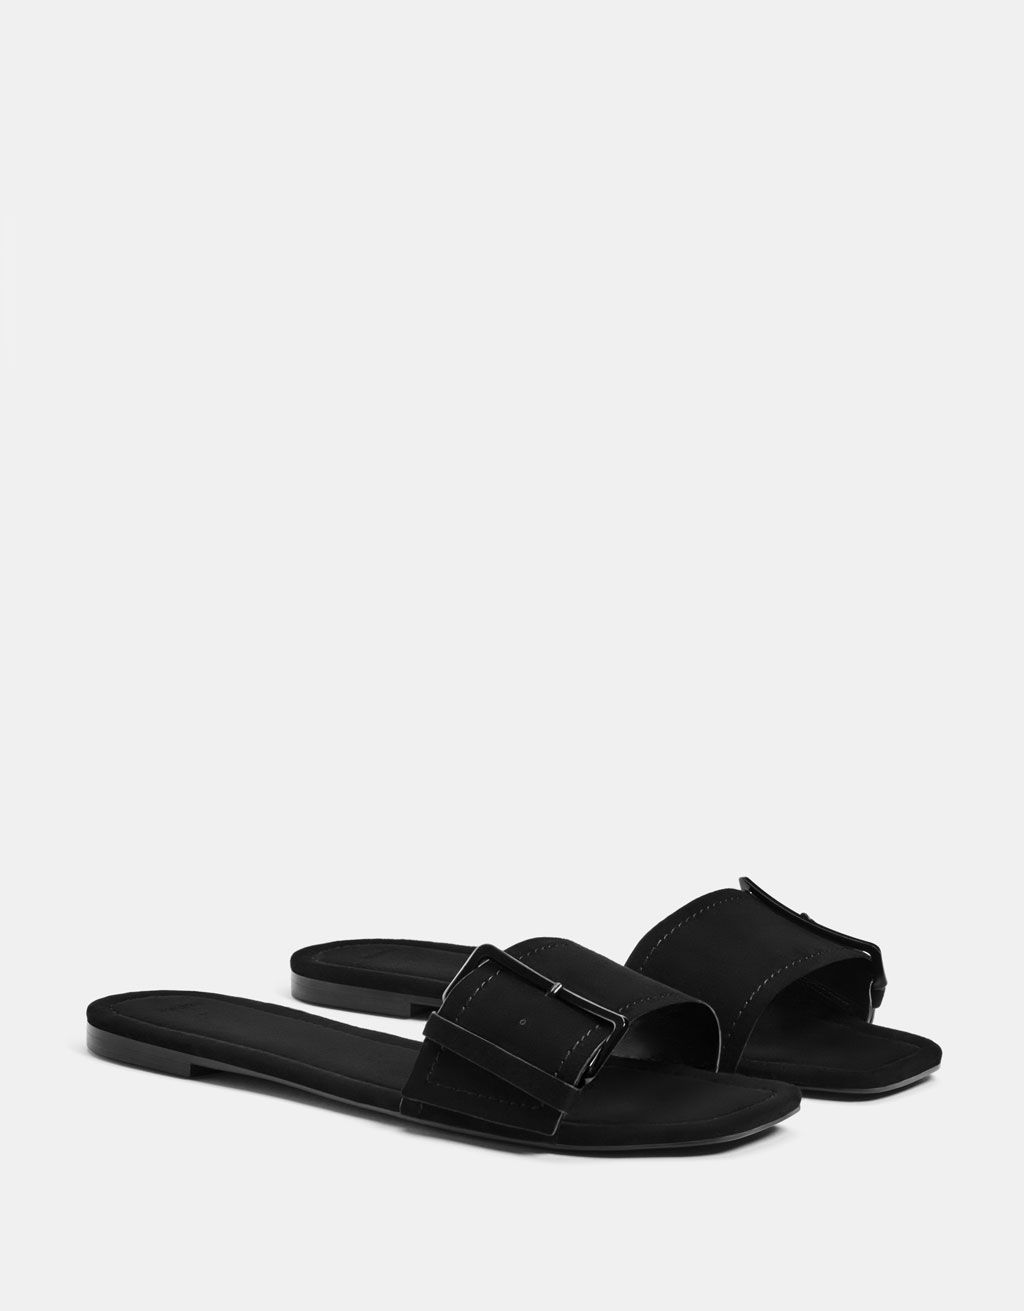 Buckled slide sandals